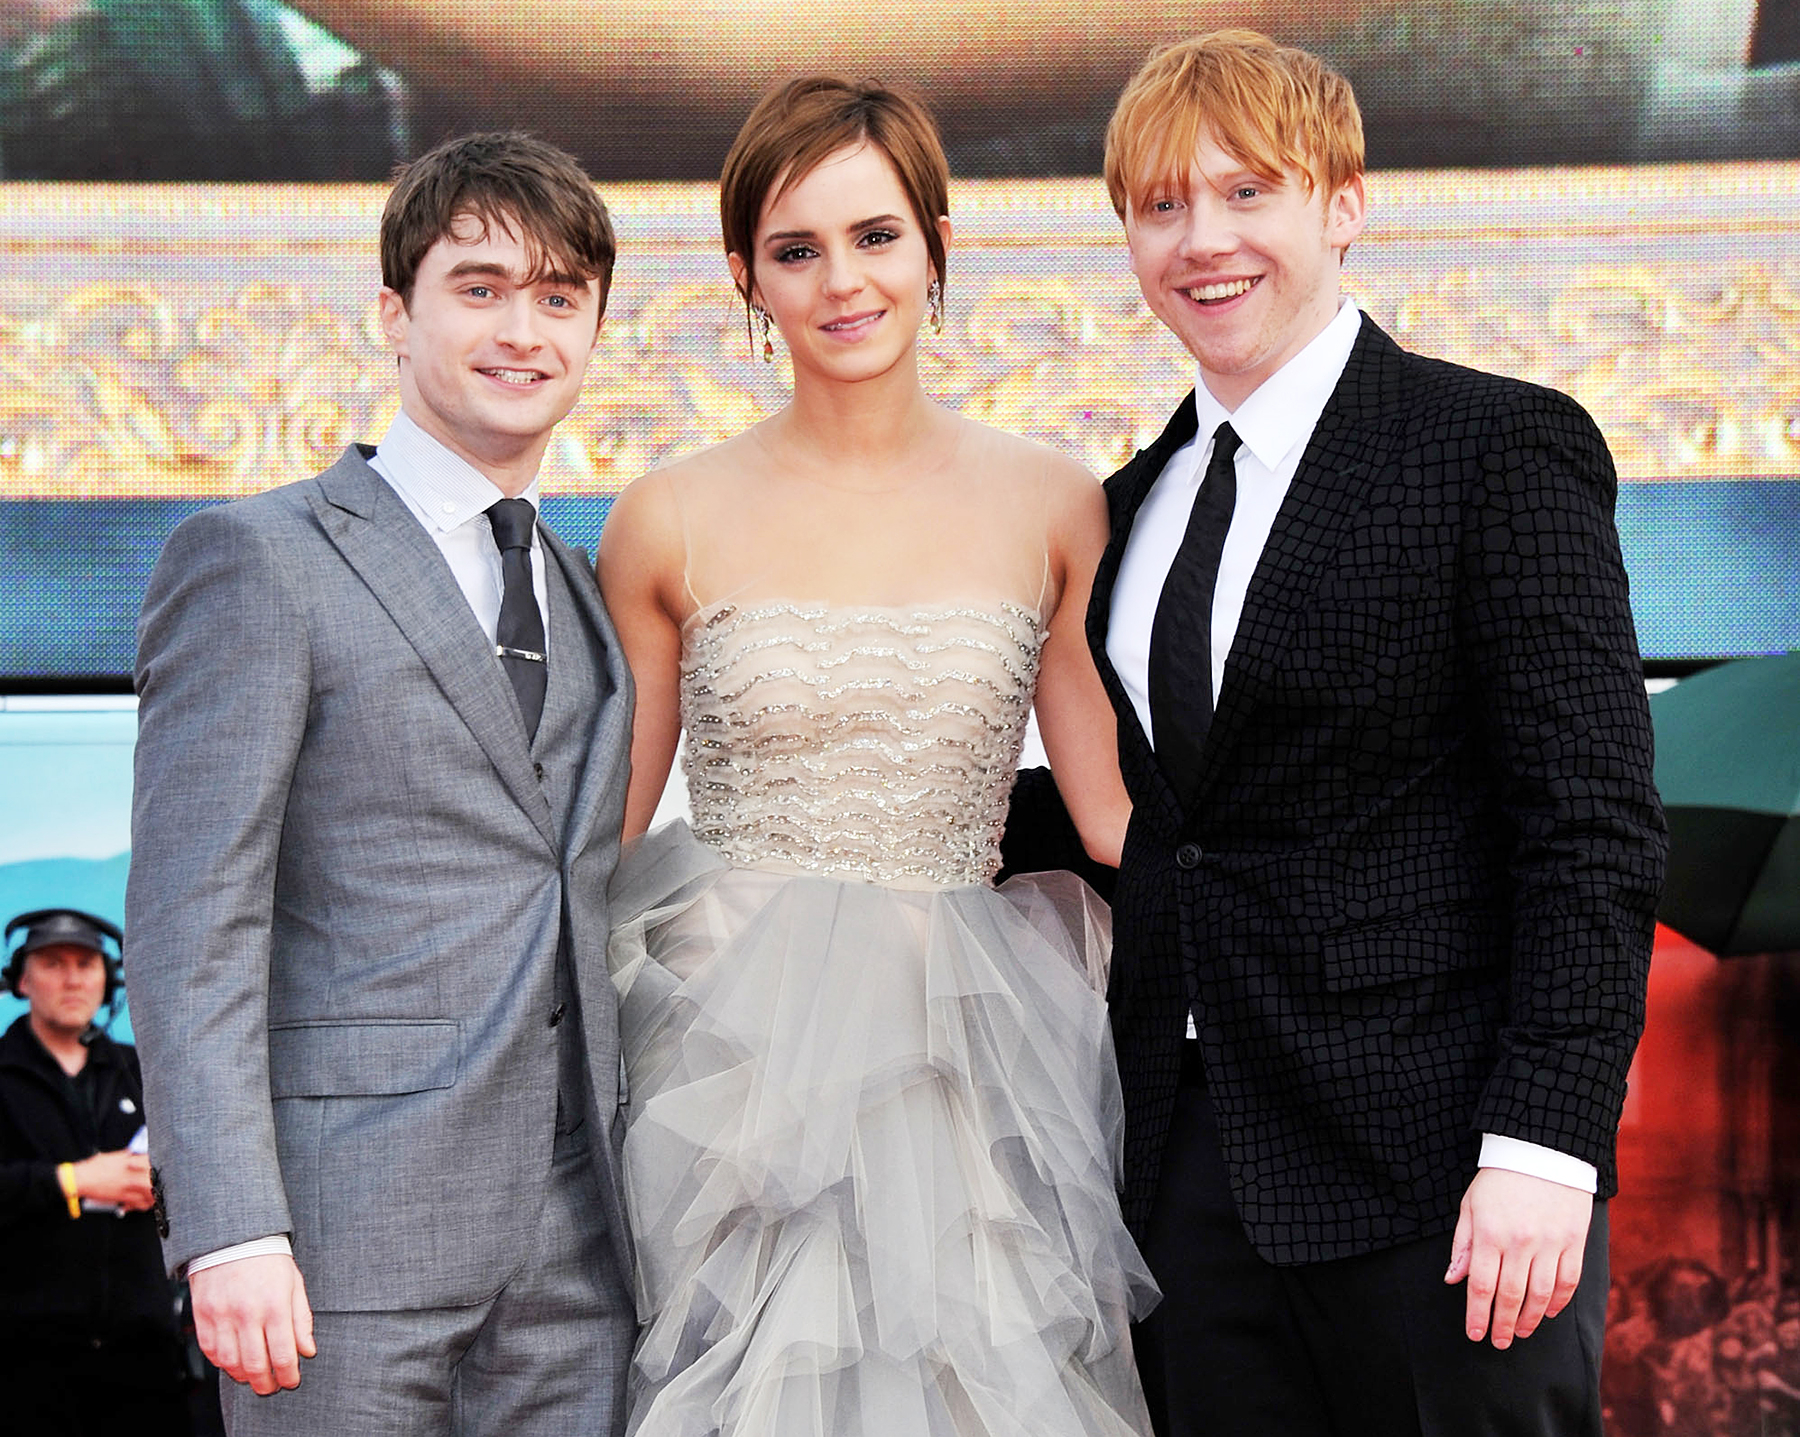 Is daniel radcliffe dating emma watson